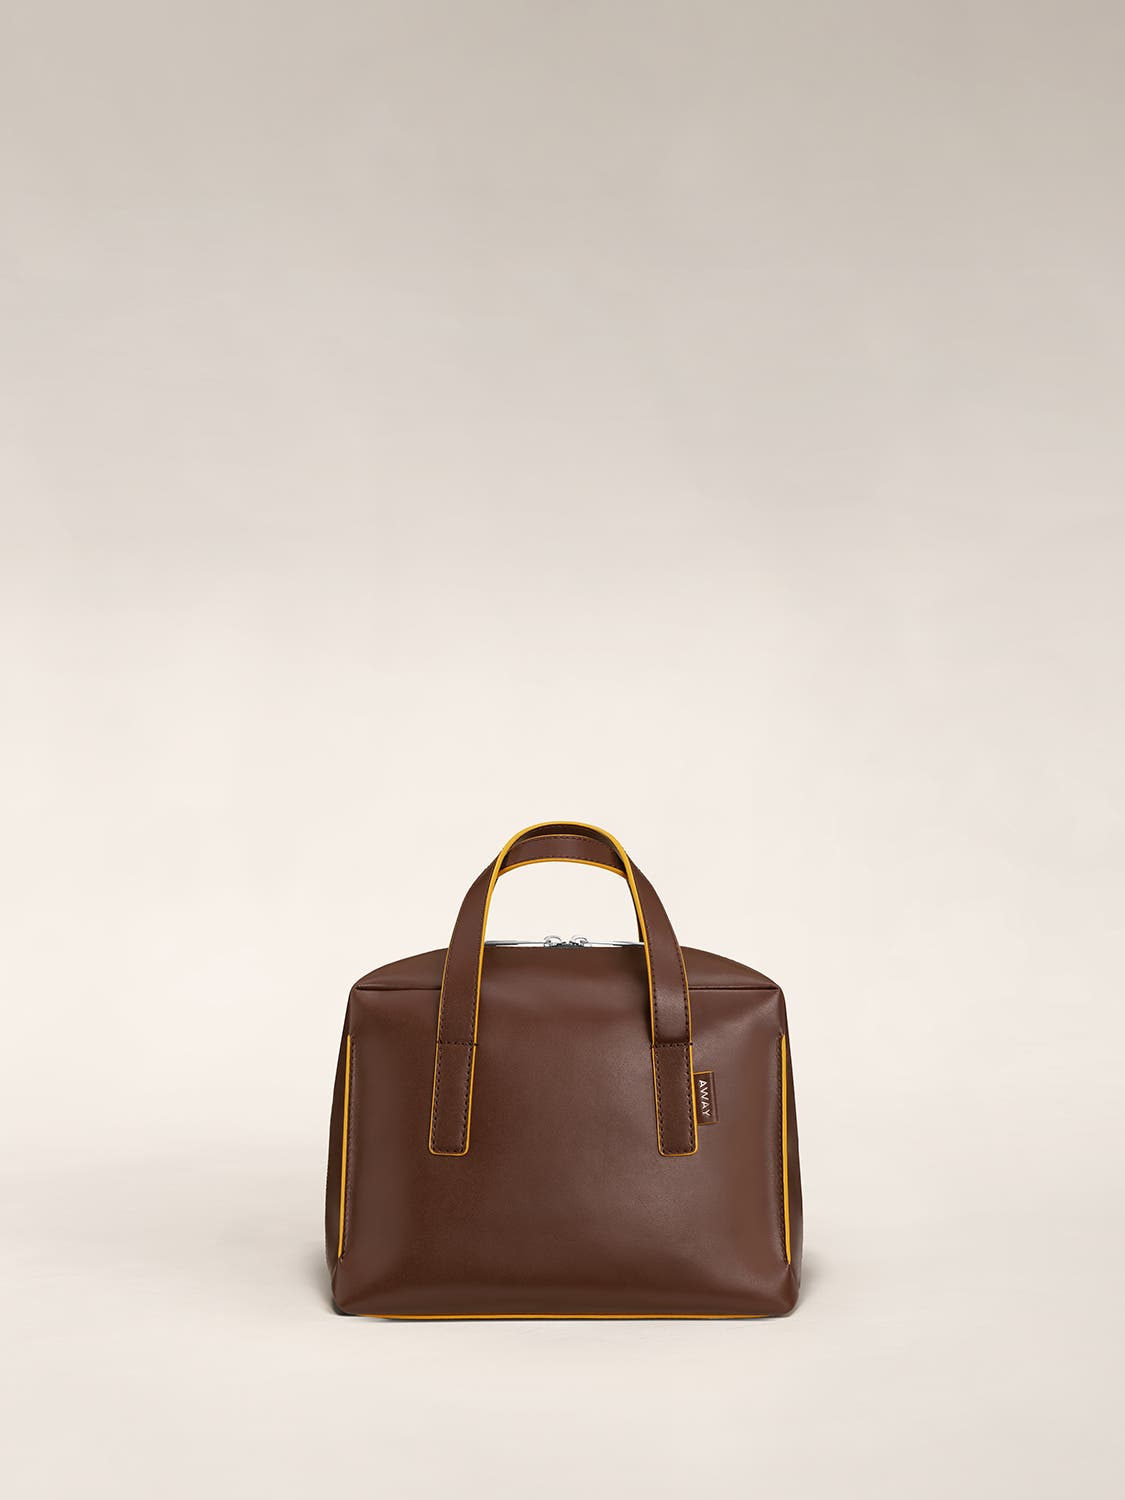 Chestnut mini travel bag with handle straps raised vertically.